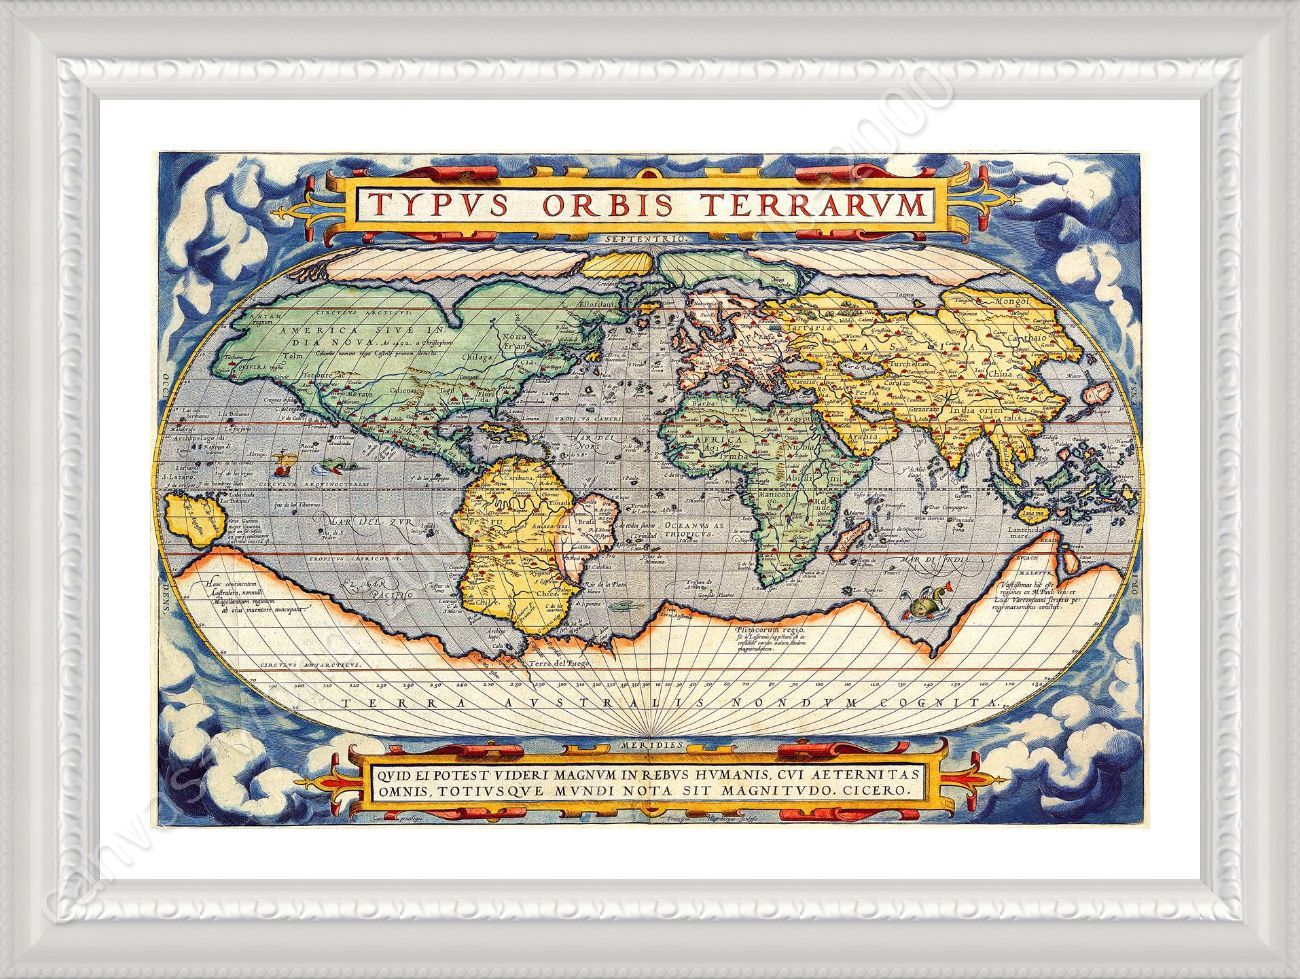 Pster enmarcado mapa antiguo mundo antiguo vintage v3 arte framed poster antique old vintage v3 world map framed art framed wall decor gumiabroncs Image collections